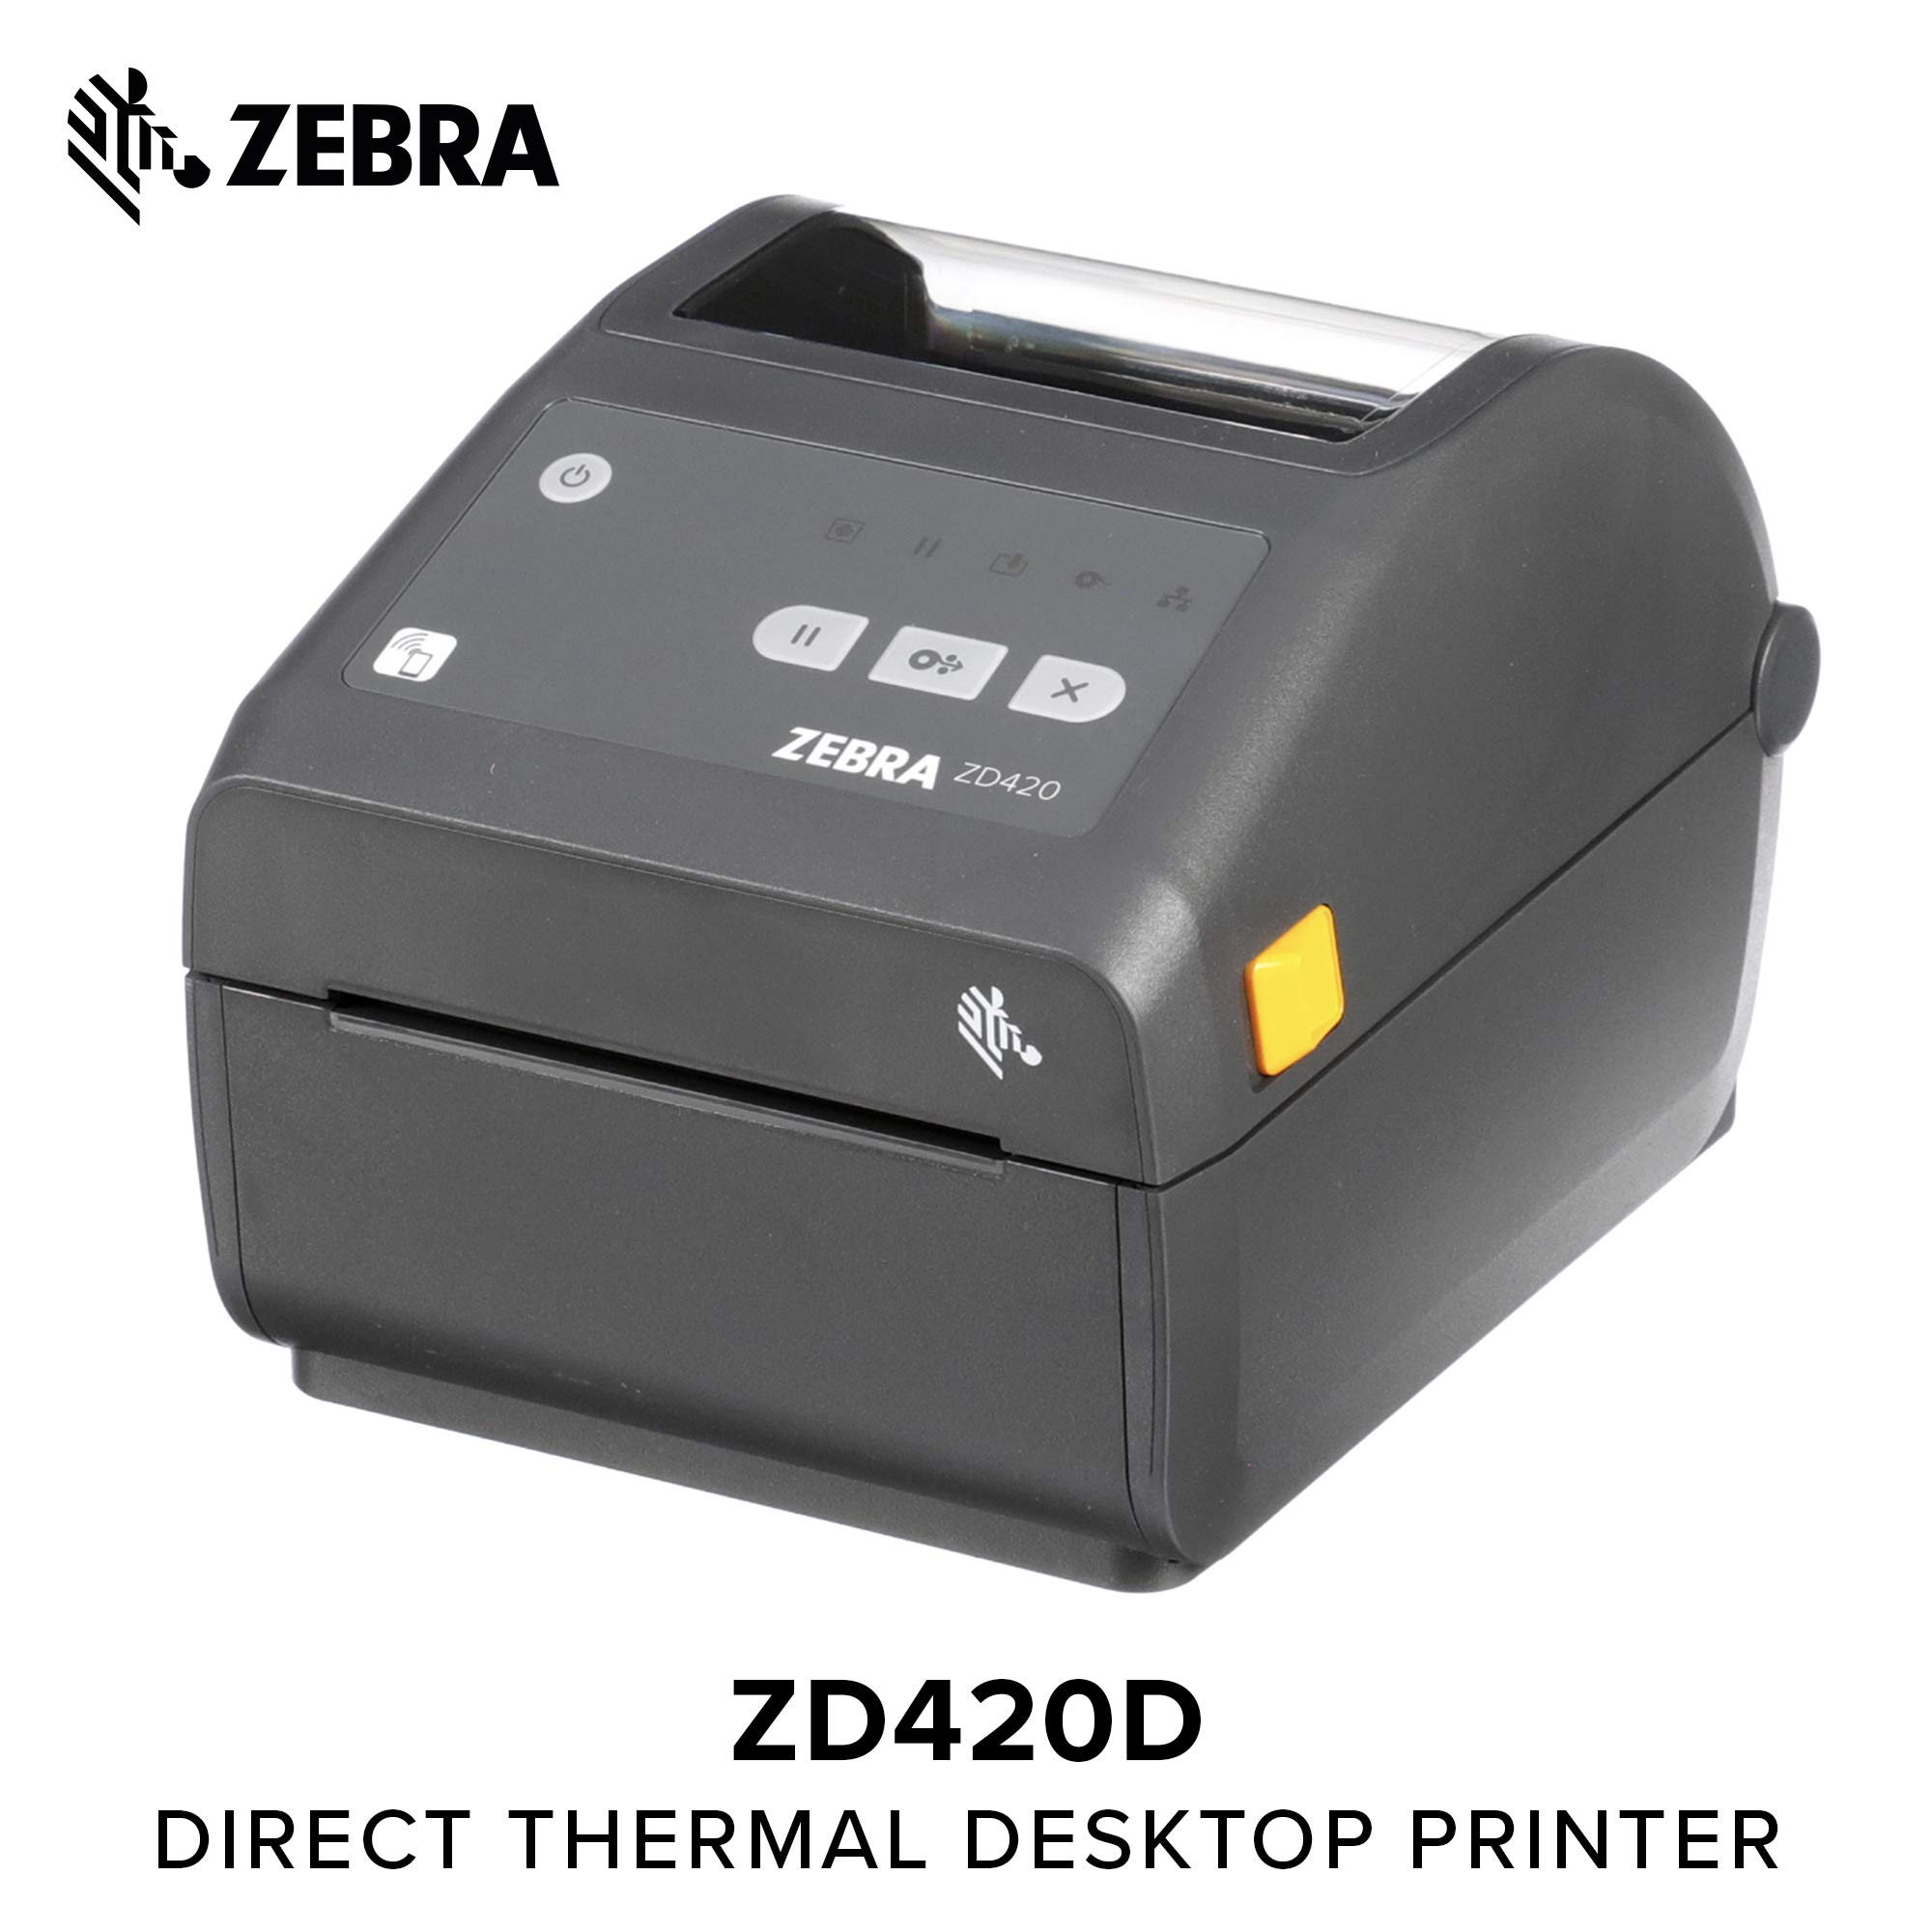 Zebra - ZD420d Direct Thermal Desktop Printer for Labels and Barcodes - Print Width 4 in - 300 dpi - Interface: WiFi, Bluetooth, USB - ZD42043-D01W01EZ